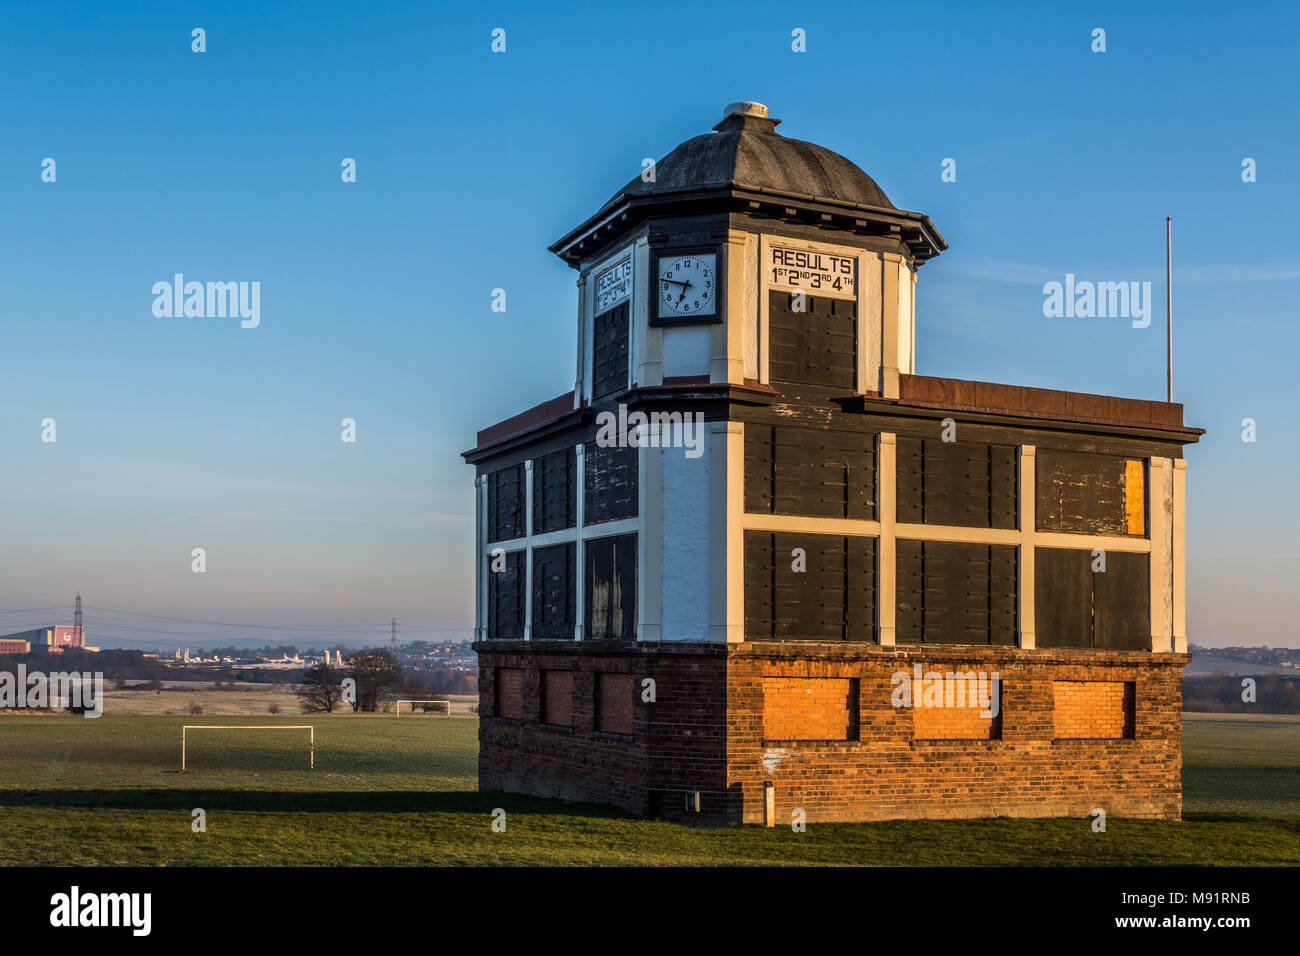 Race organisers directors box office at Pontefract Race Course, West Yorkshire, UK. Horse racing. - Stock Image